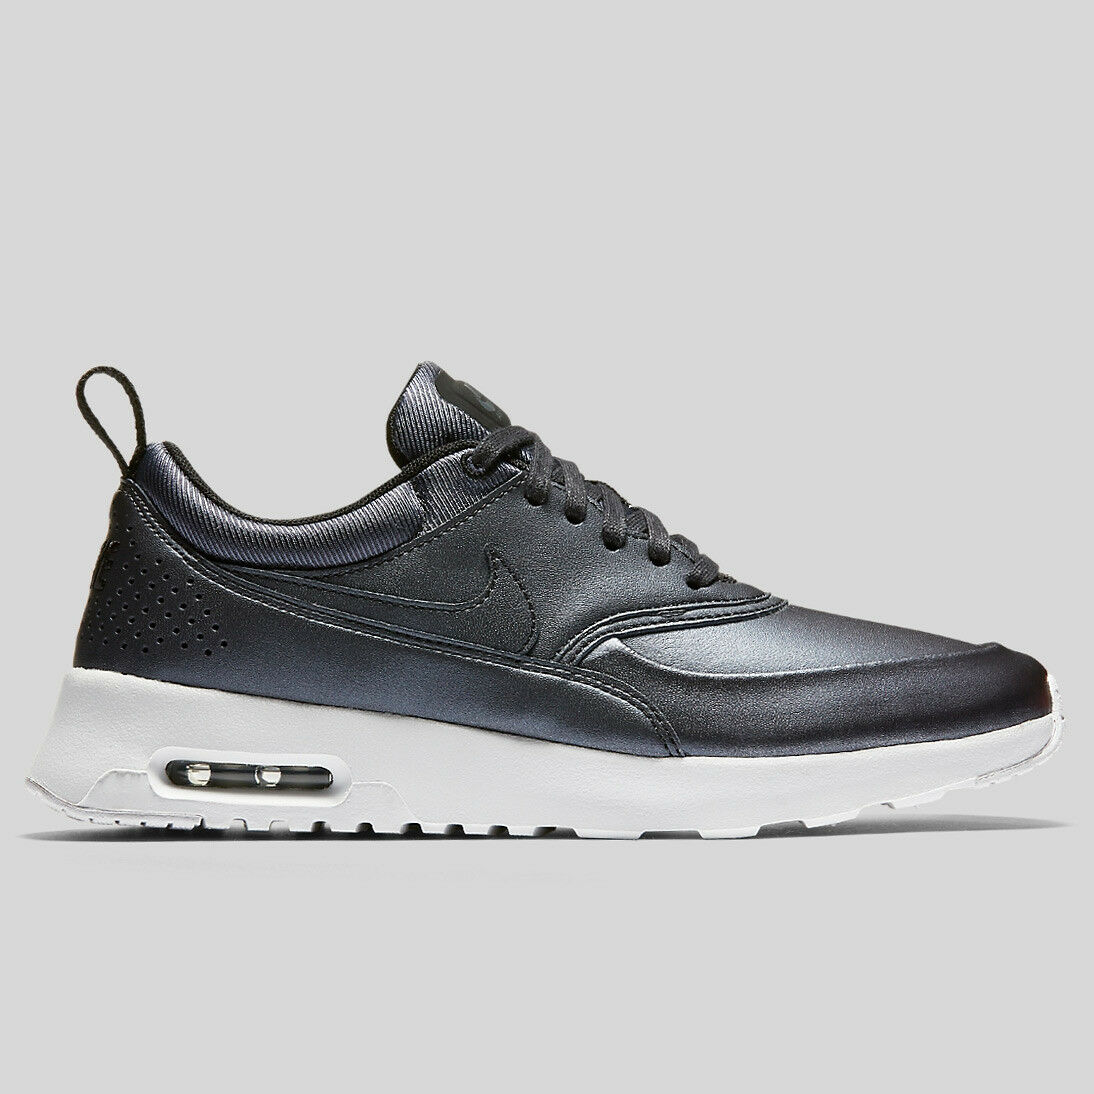 New Max Nike Women's Air Max New Thea SE Shoes (861674-002)  Metallic Hematite cf4ab6